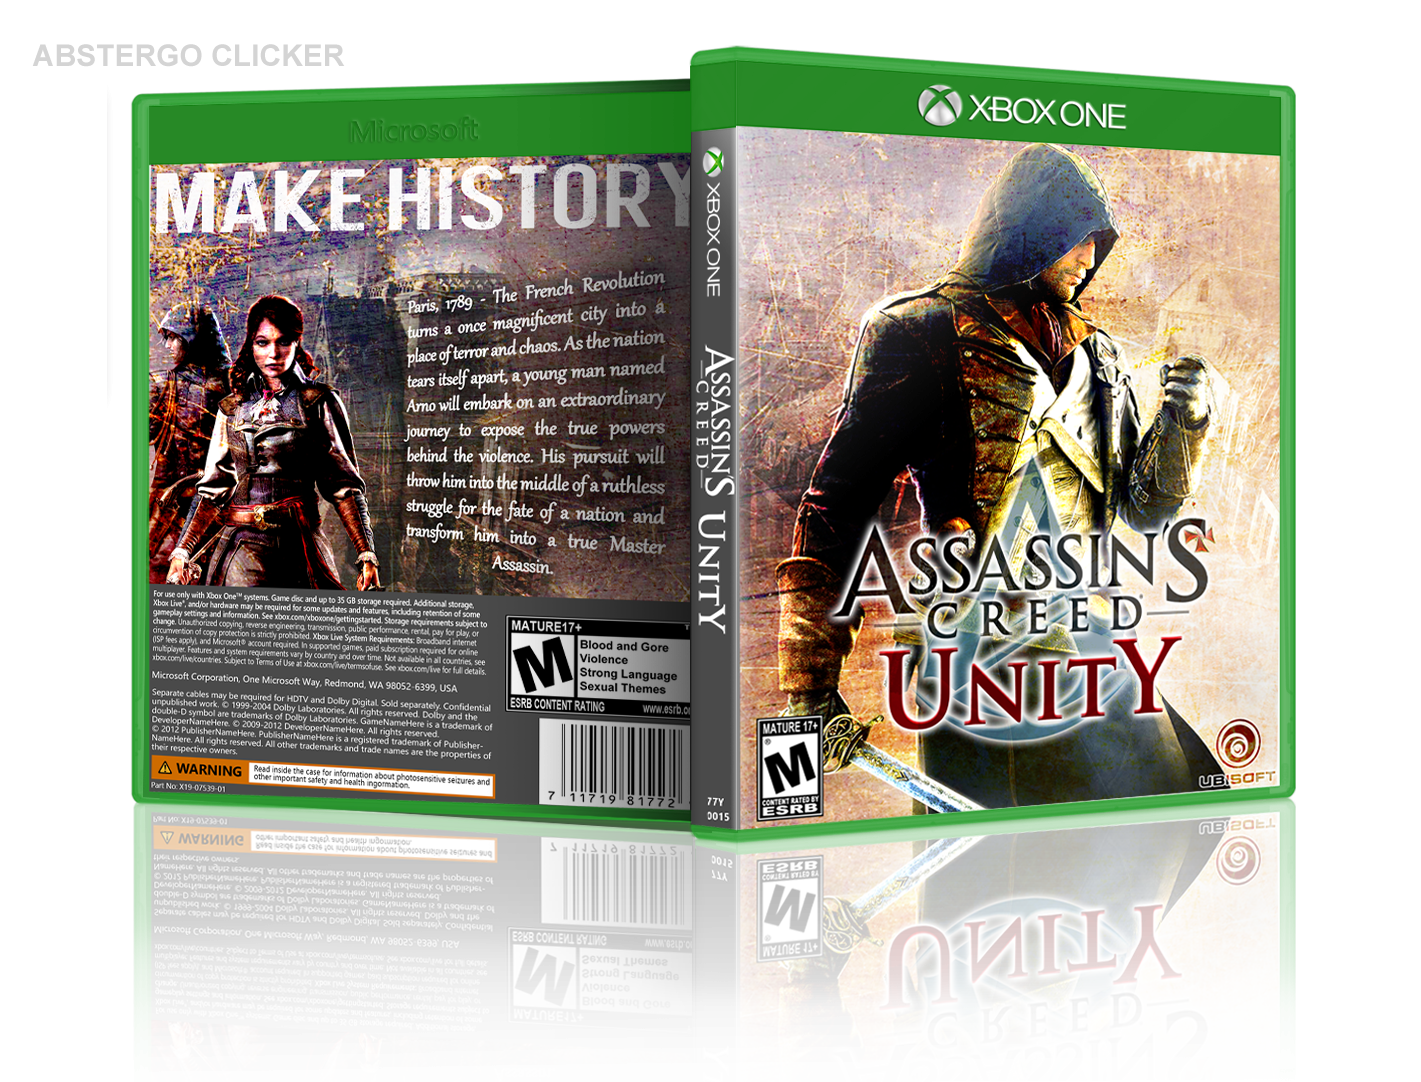 Assassin's Creed Unity box cover